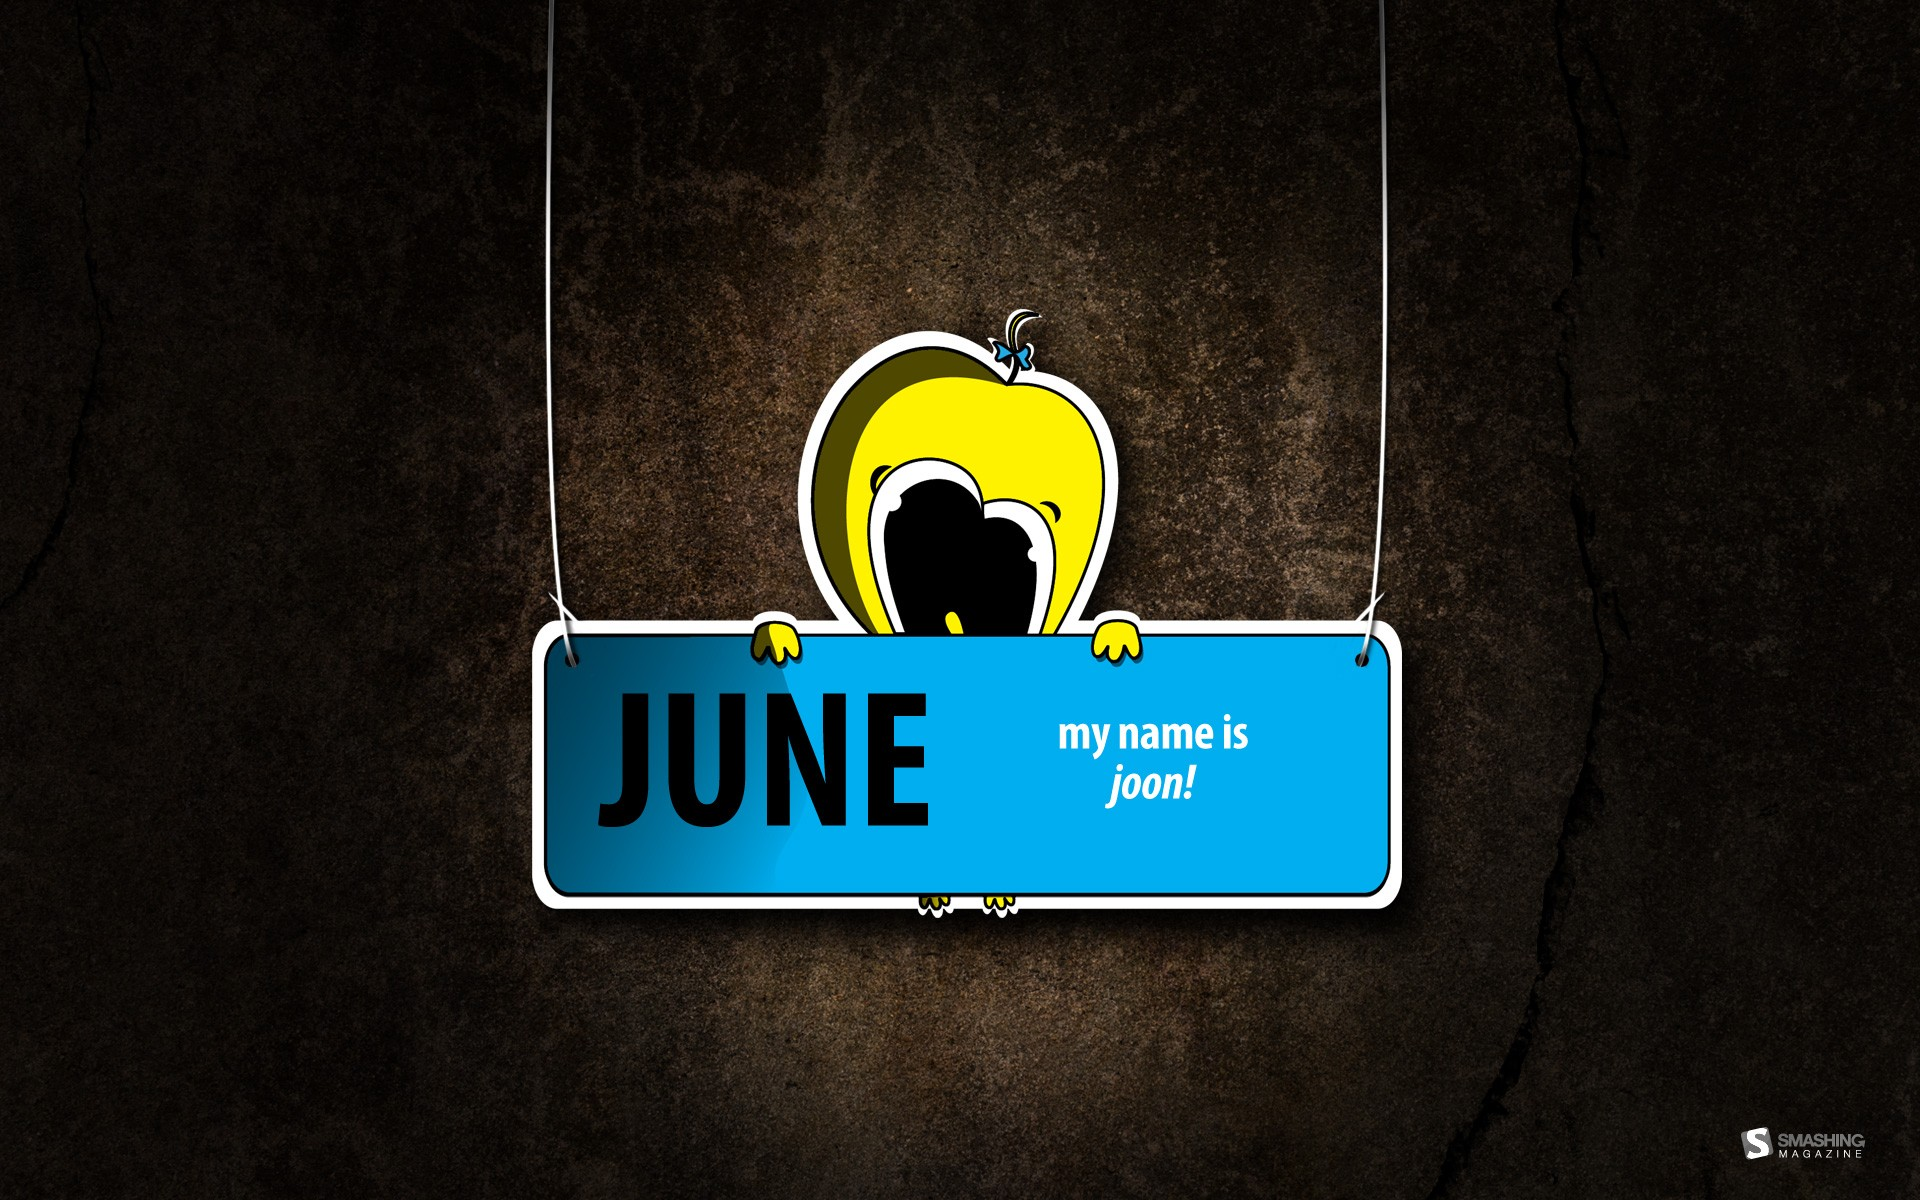 Wallpaper Named June is My Name Wallpapers June is 1920x1200